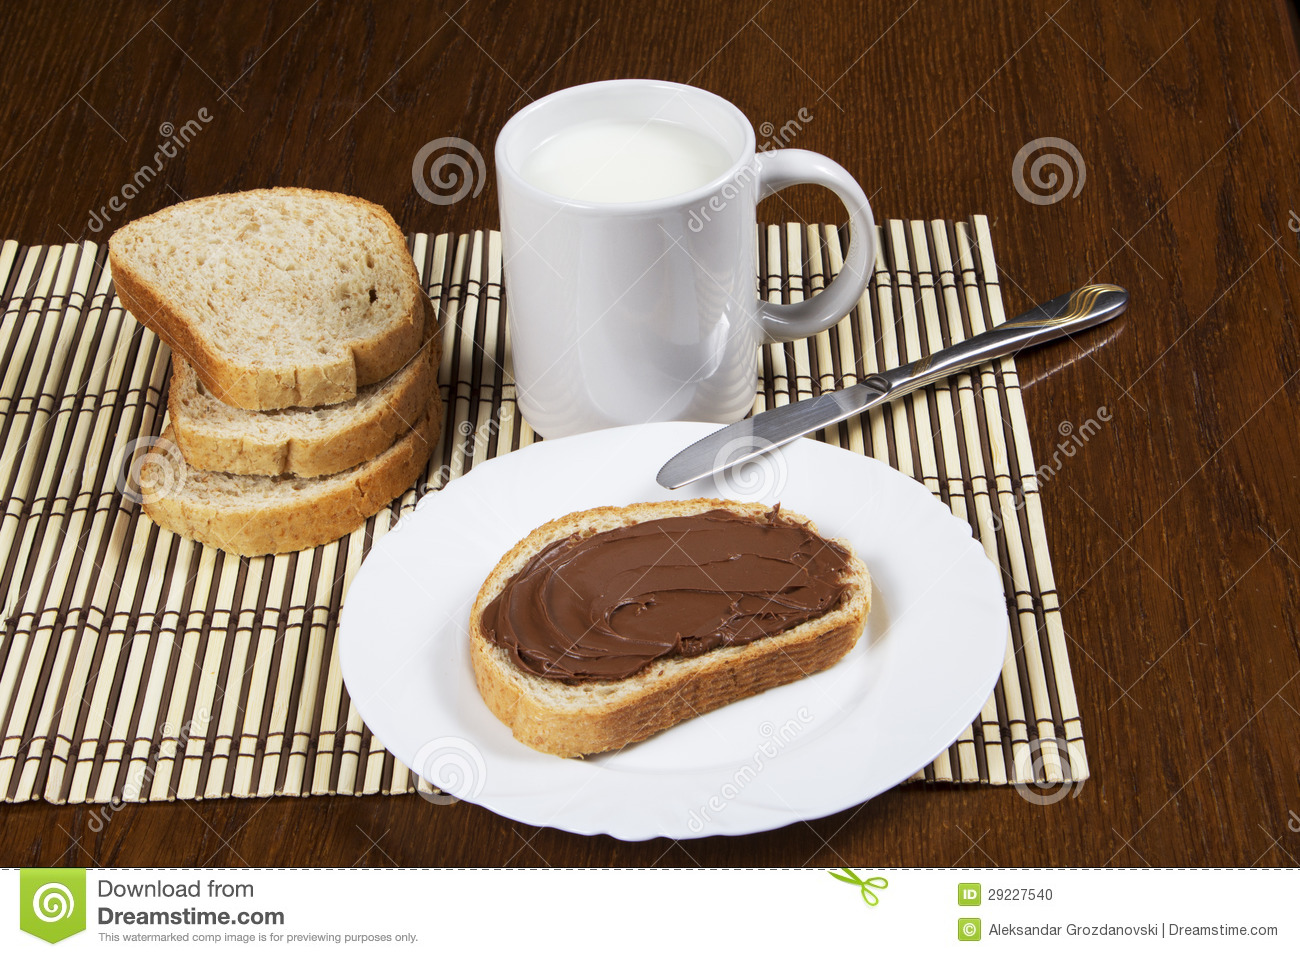 Bread With Chocolate Spread Stock Photo - Image: 29227540